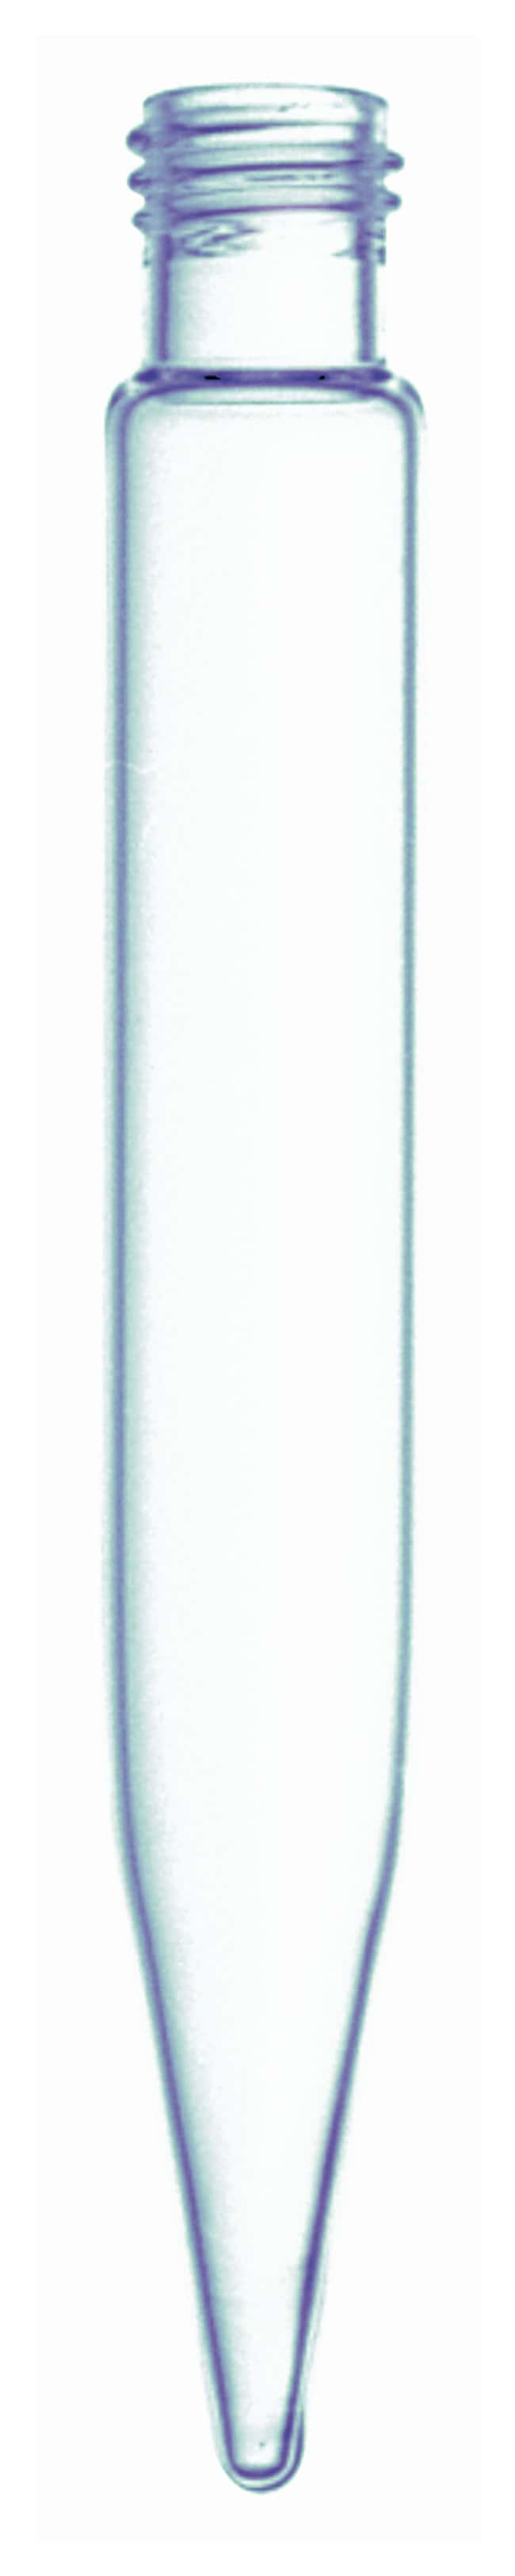 DWK Life Sciences Kimble™ Conical-Bottom Glass Centrifuge Tubes, 50mL, Screw Thread